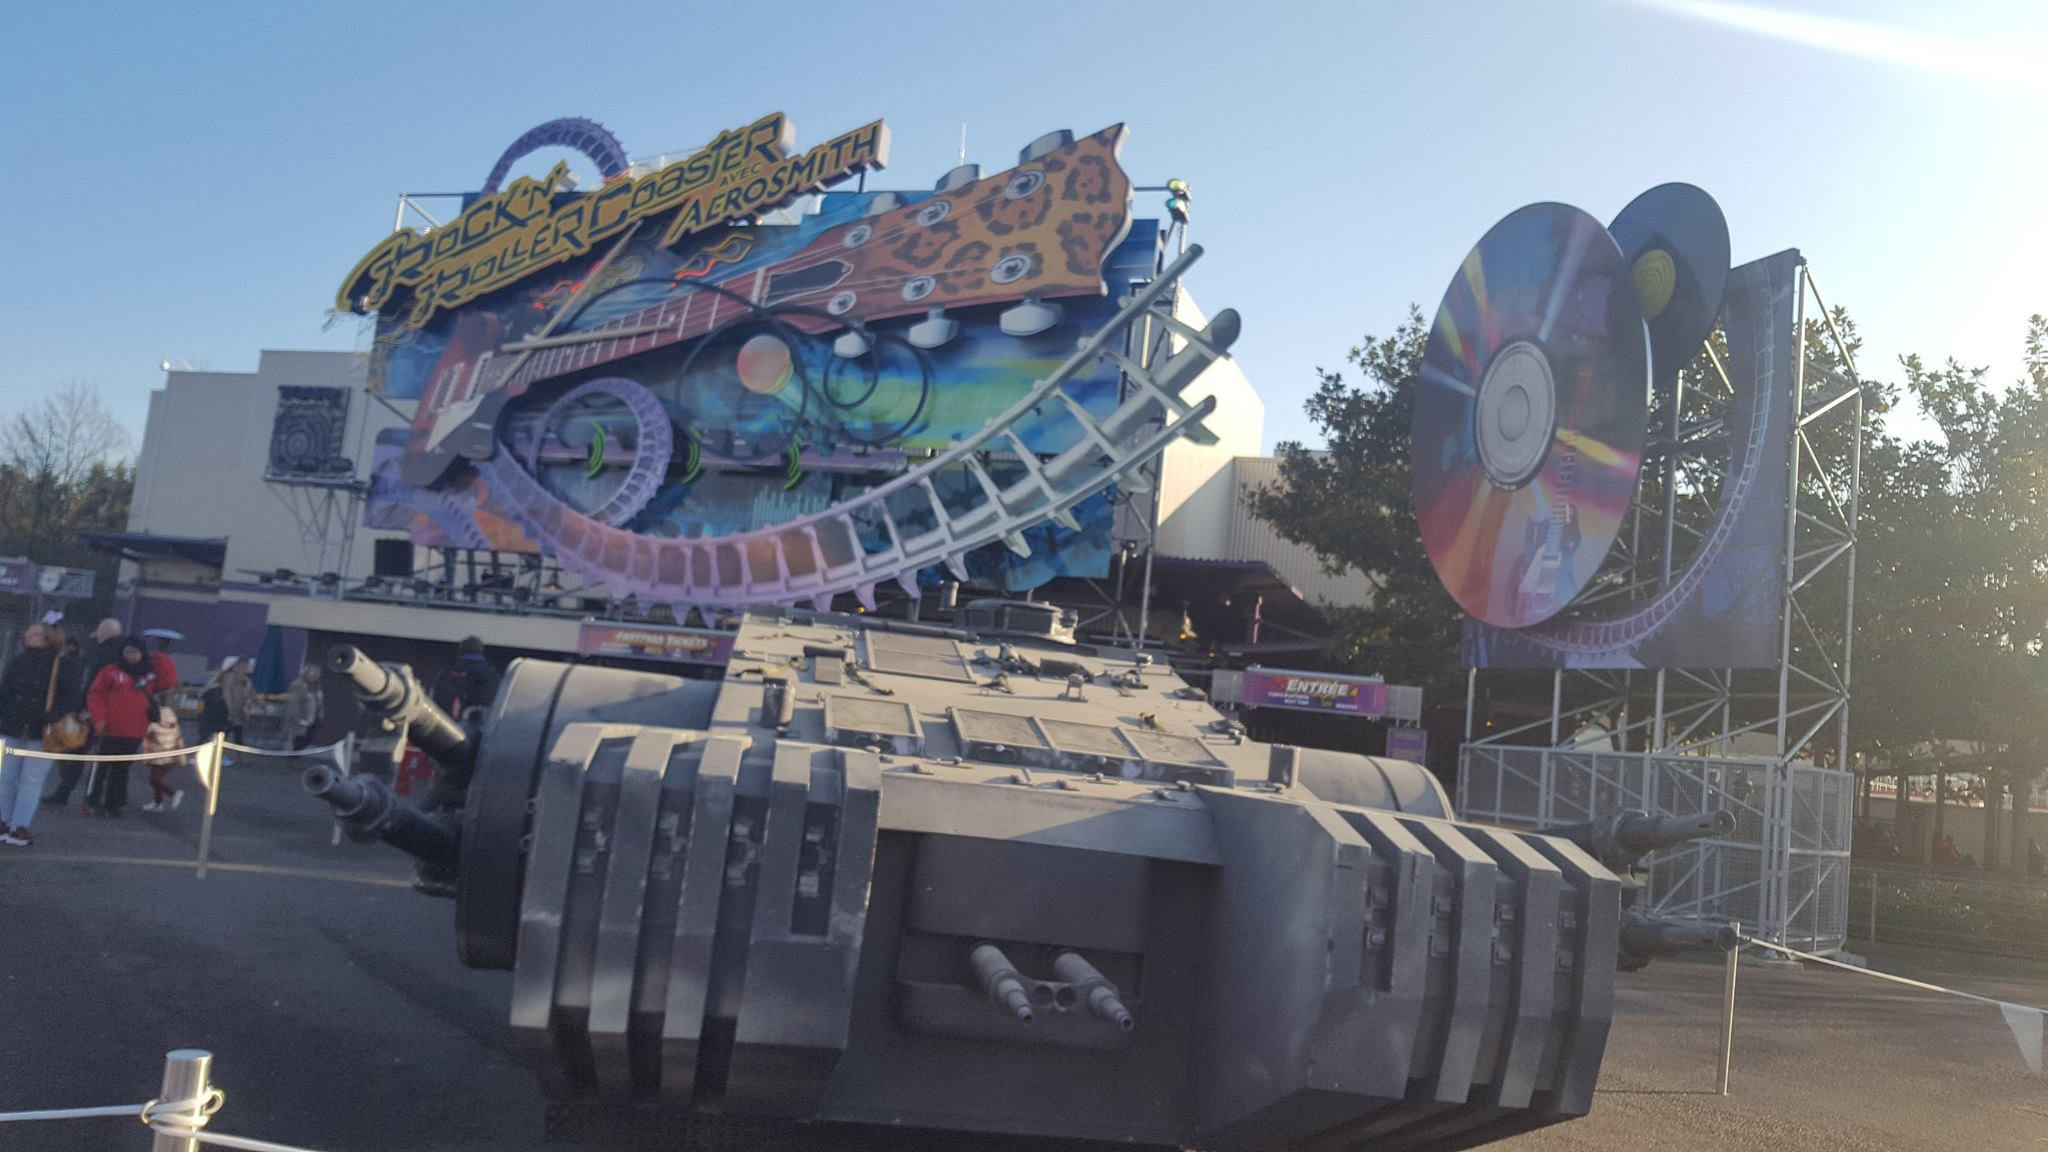 Tank - Backlot - Saison de la force 2018